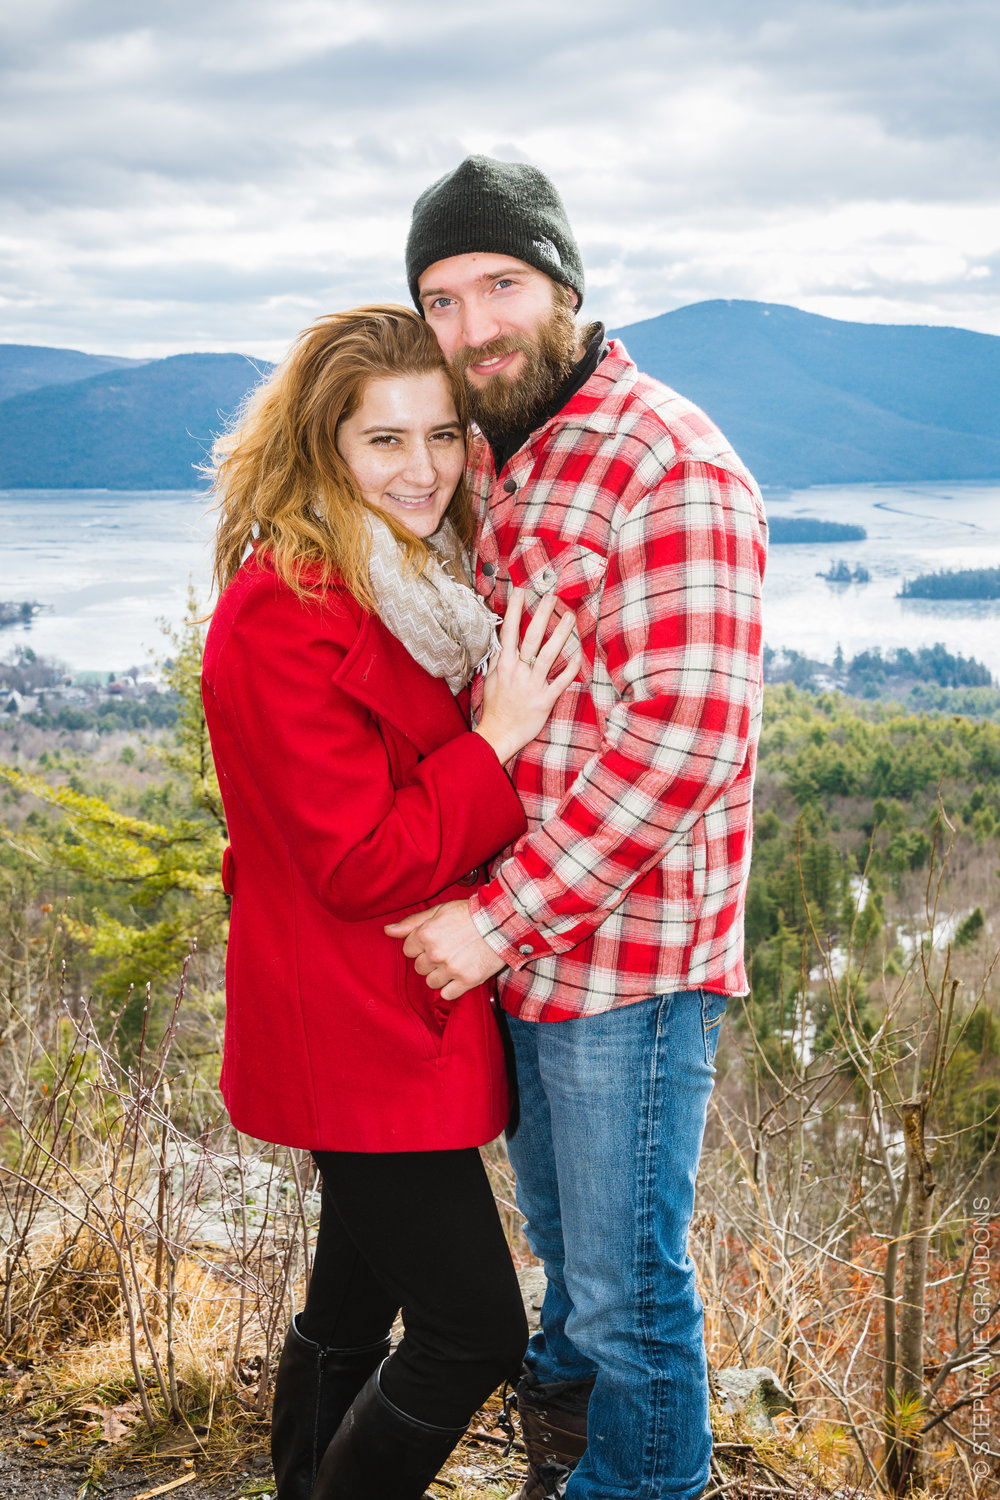 Lake-George-engagement.jpg